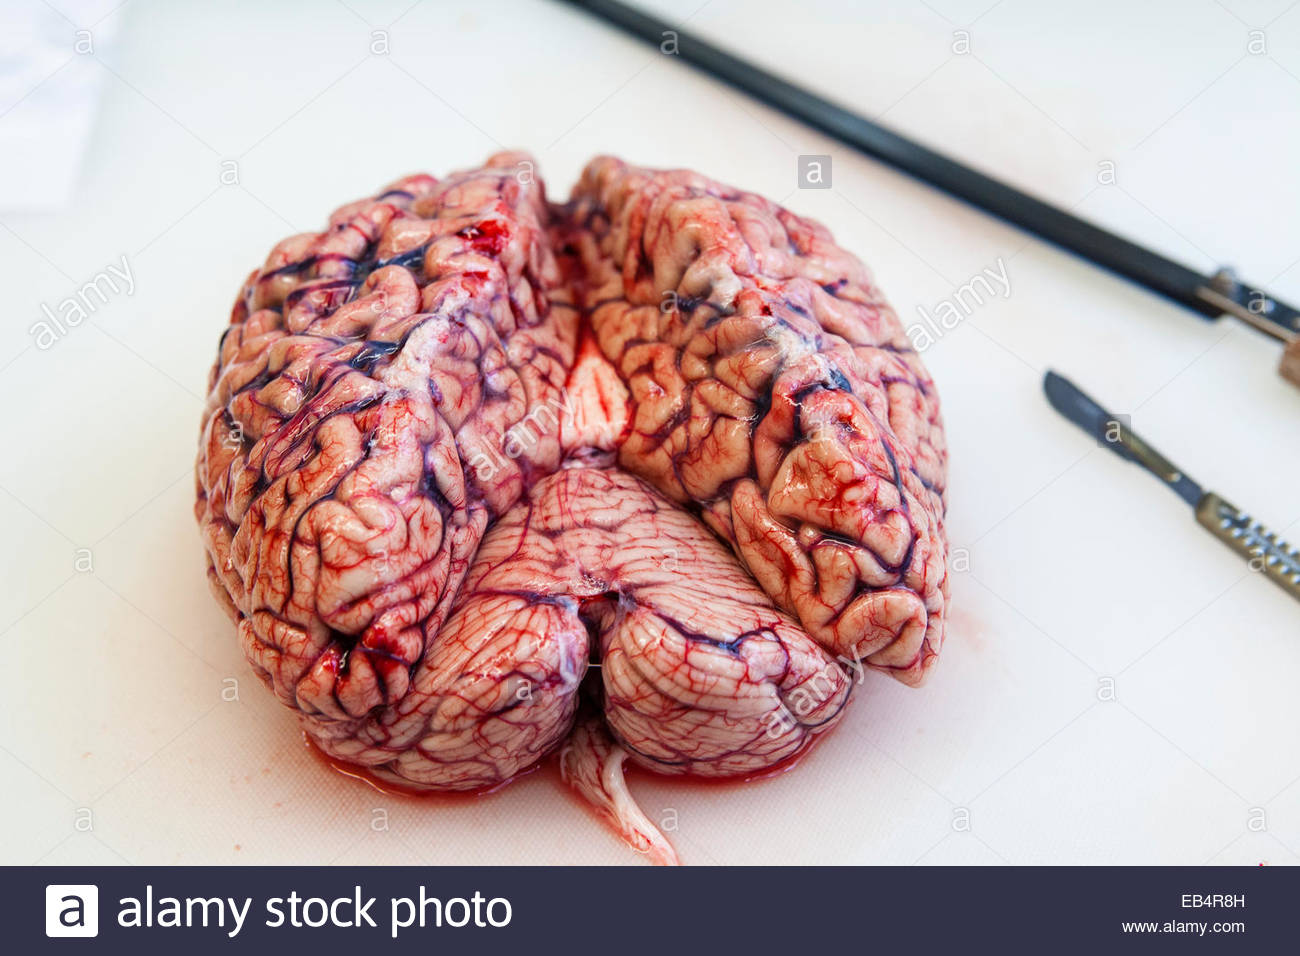 Human brain before a autopsy to determine the cause of death Stock ...